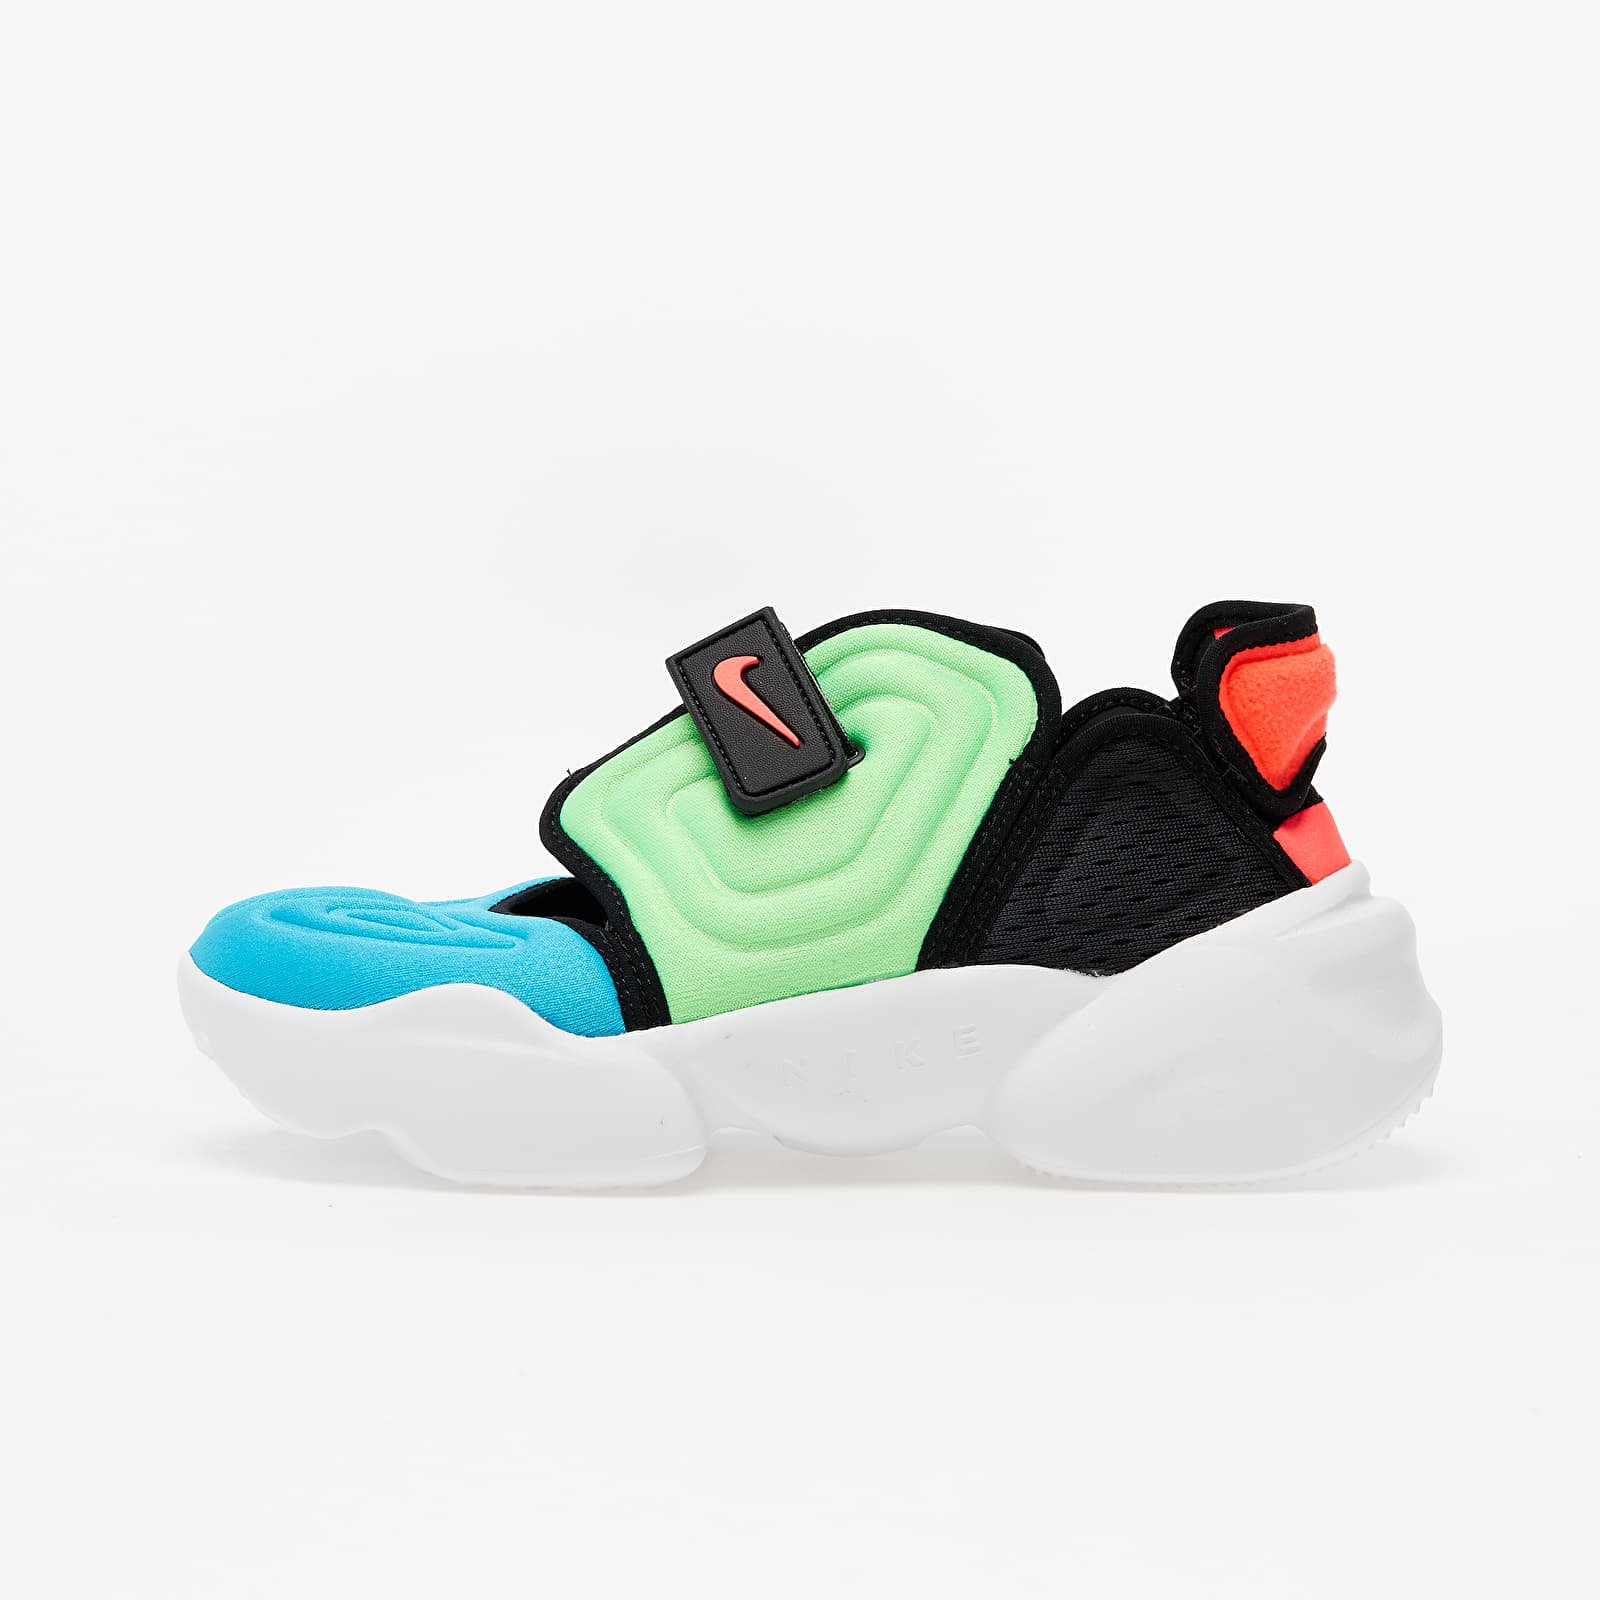 Nike W Aqua Rift Blue Fury/ Flash Crimson-Black CW7164-400